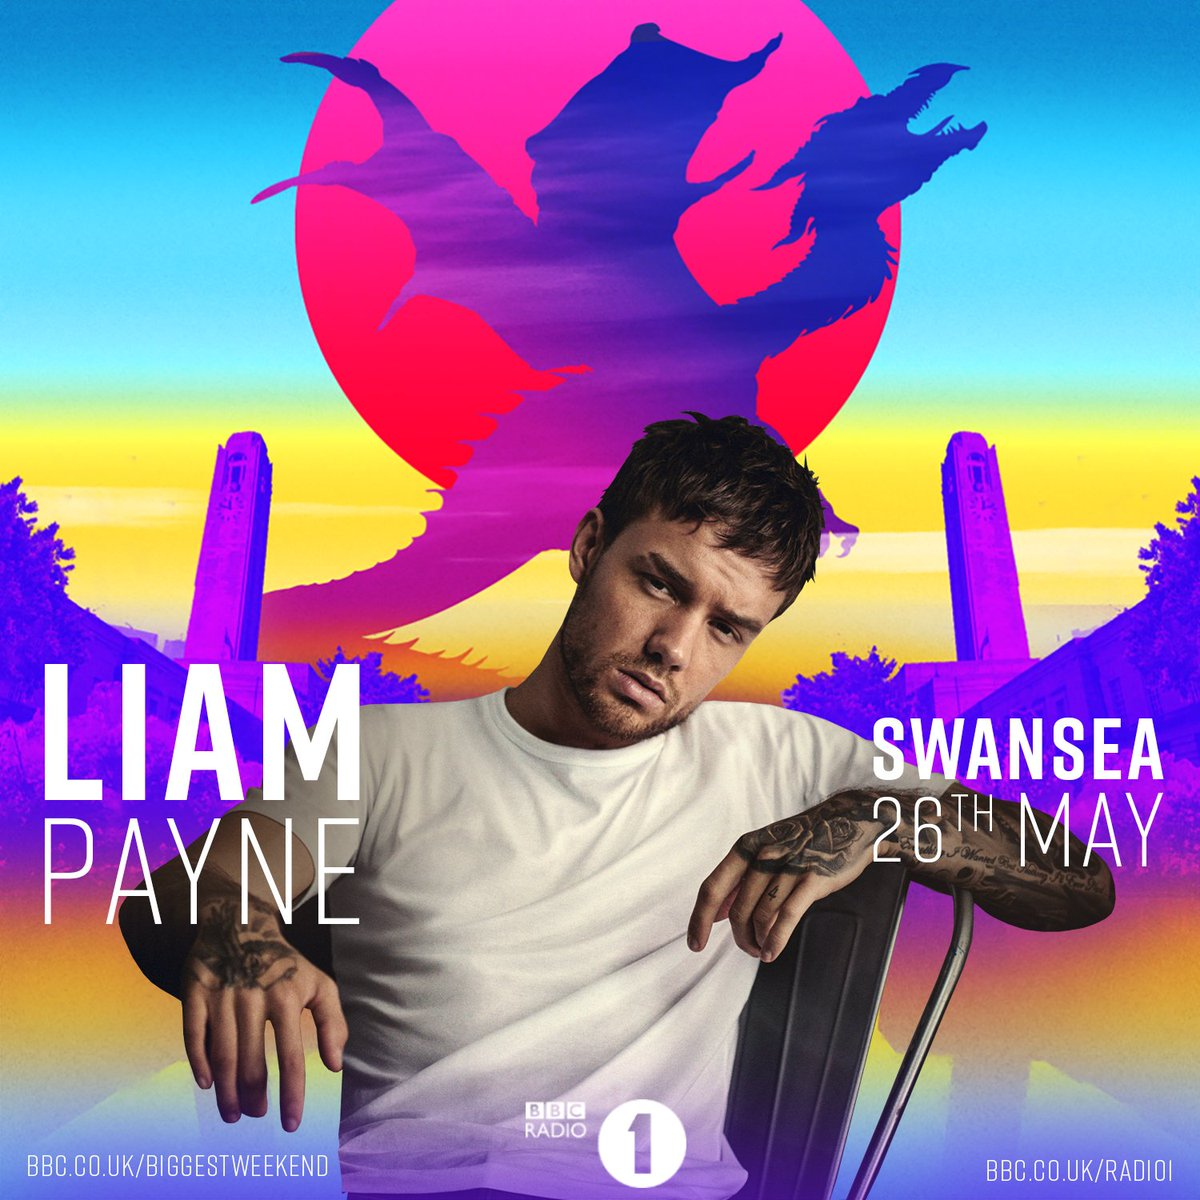 This is gonna be big... I'm performing at @bbcmusic's #BiggestWeekend in Swansea on 26th May! Find out all the info here https://t.co/i9UkSXAgJn